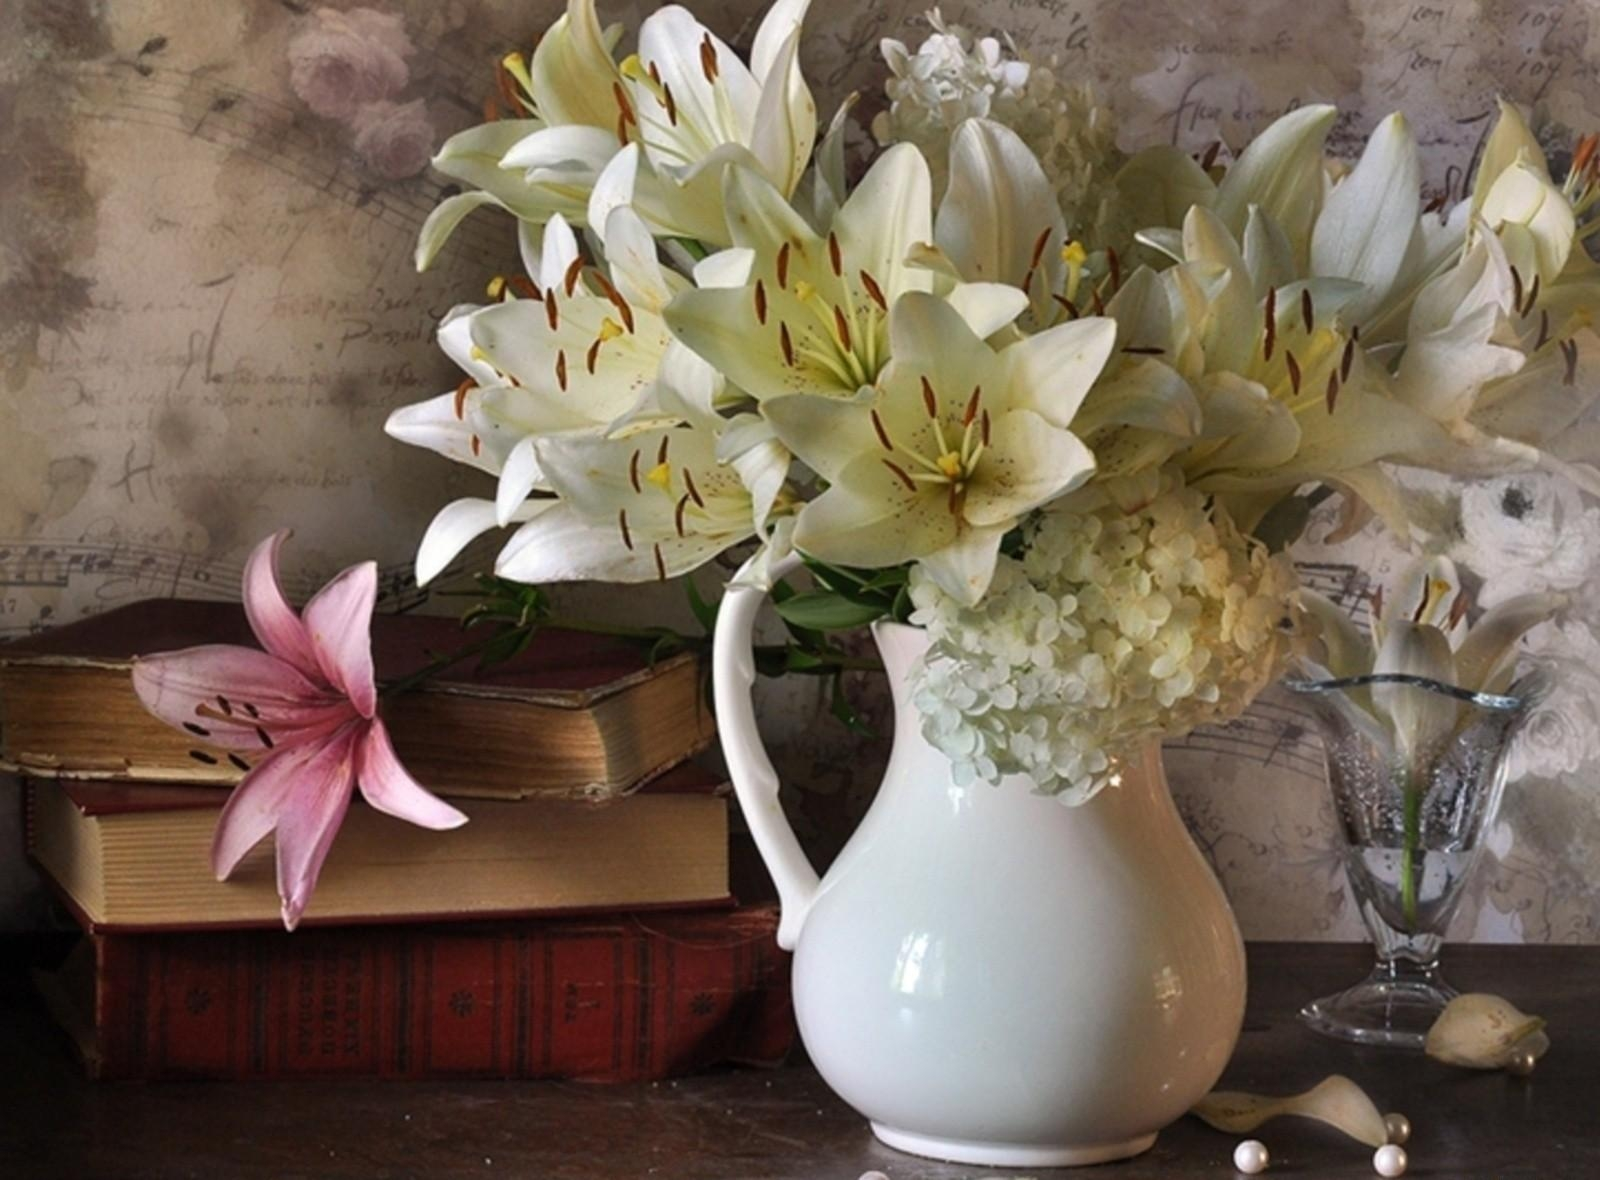 84681 download wallpaper Music, Flowers, Lilies, Books, Bouquet, Vase, Notes, Peas, Hydrangeas screensavers and pictures for free